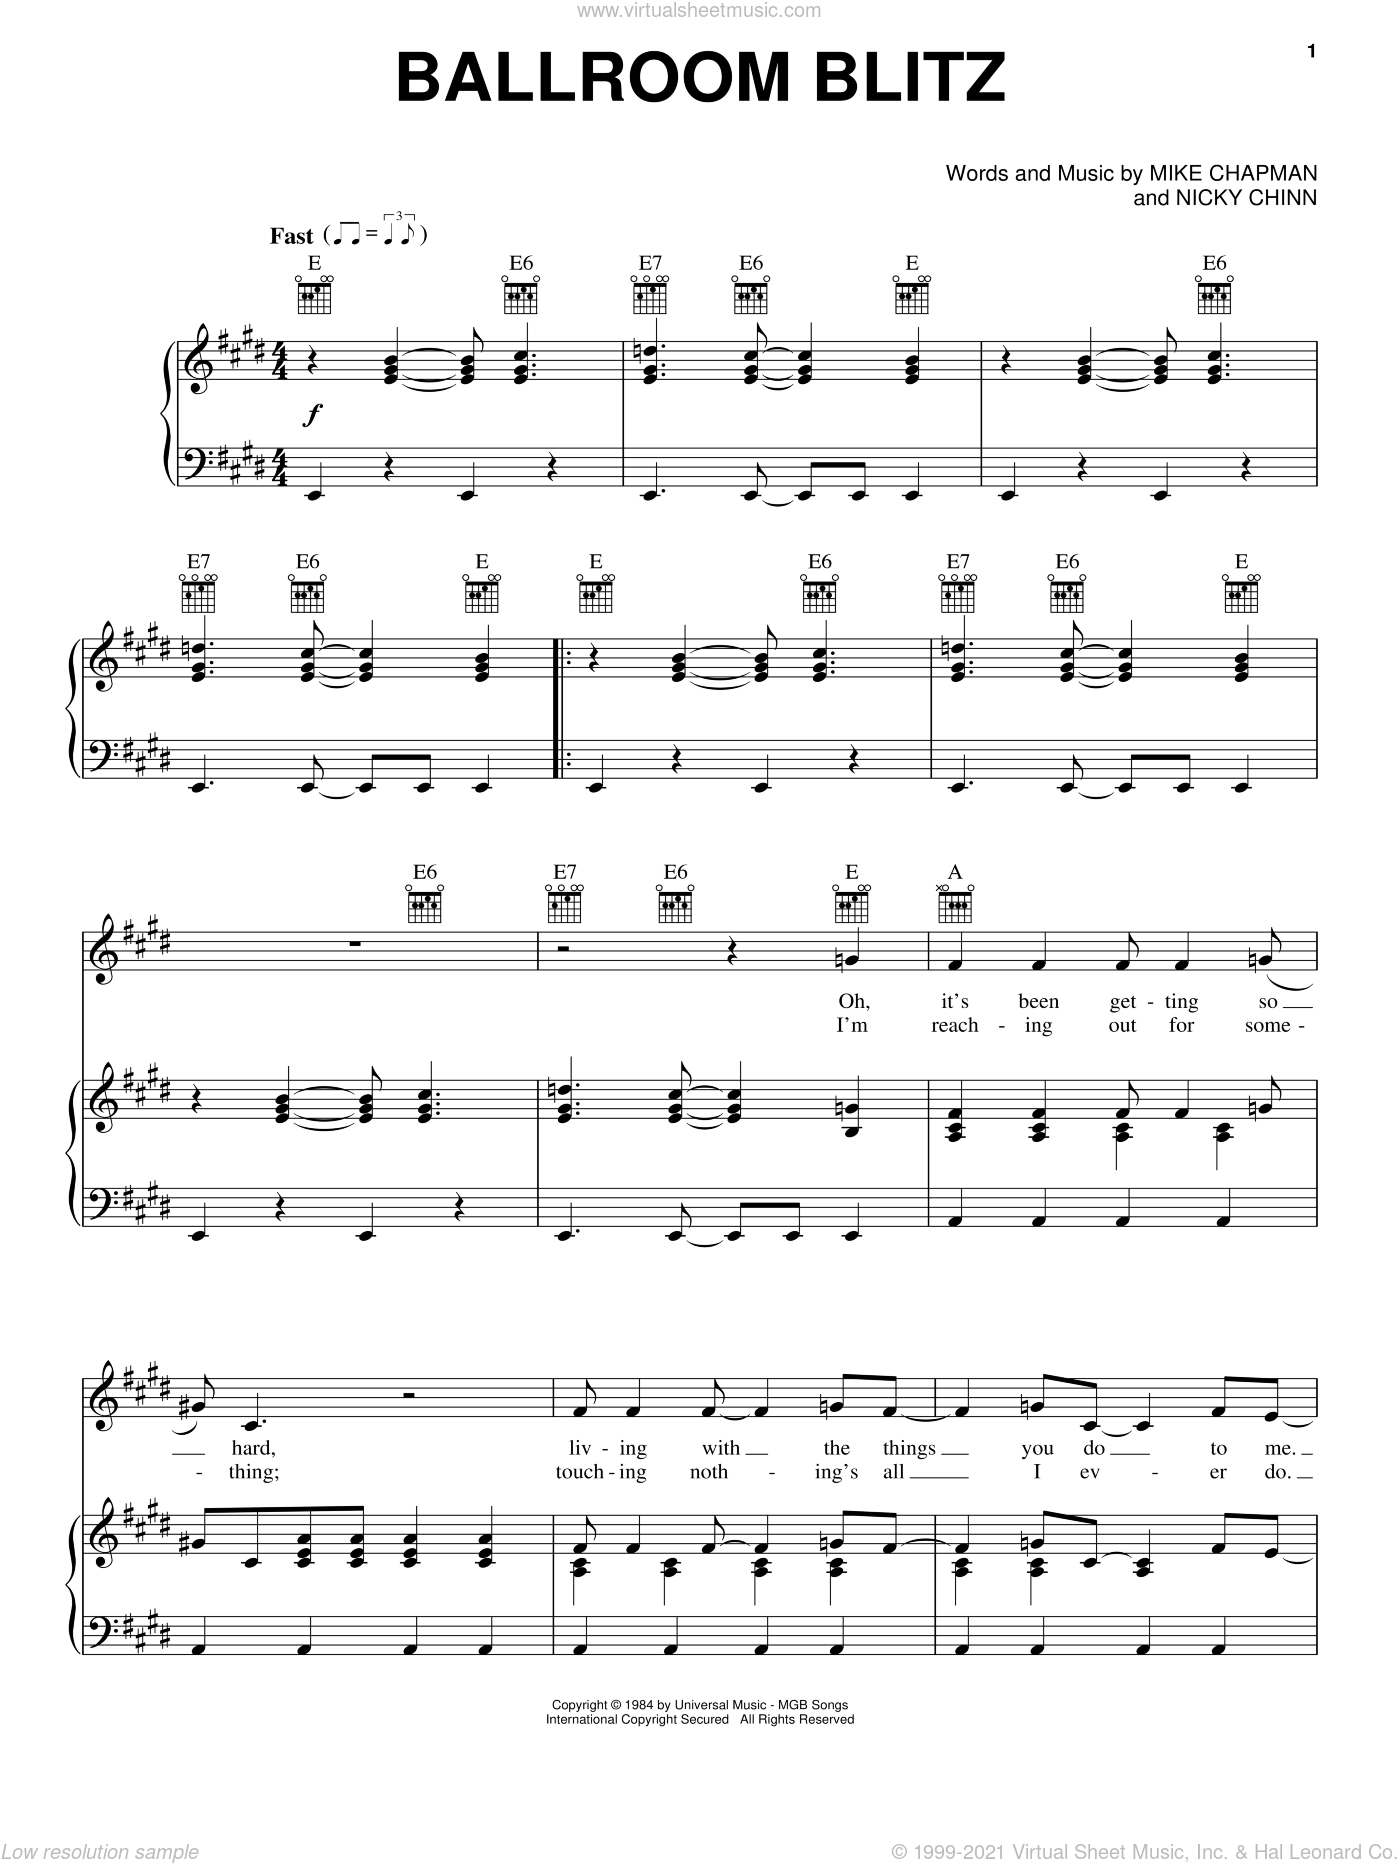 Ballroom Blitz sheet music for voice, piano or guitar by Nicky Chinn